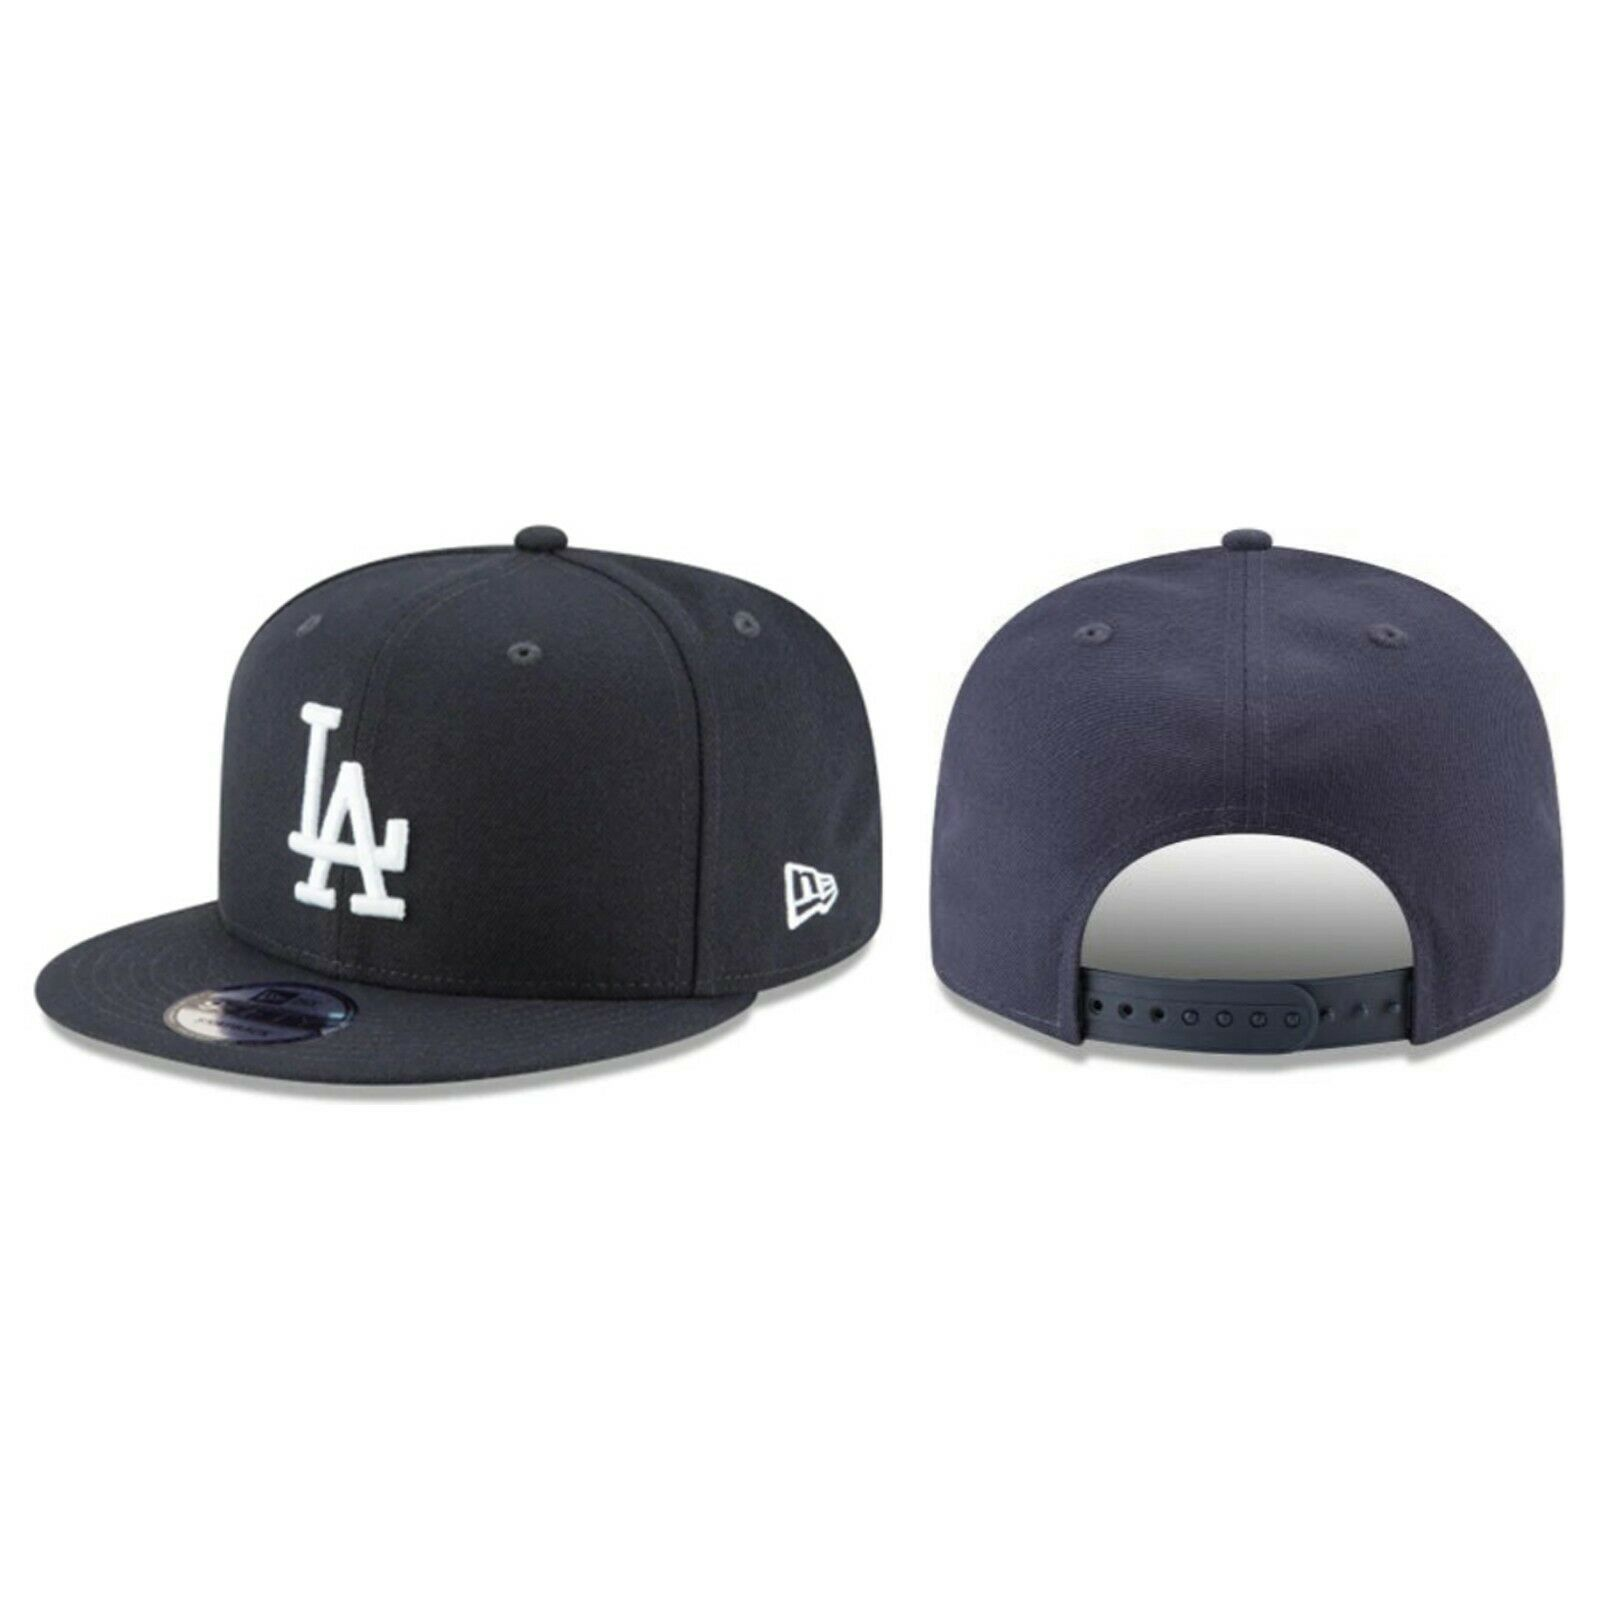 los angeles dodgers 9fifty snapback cap authentic